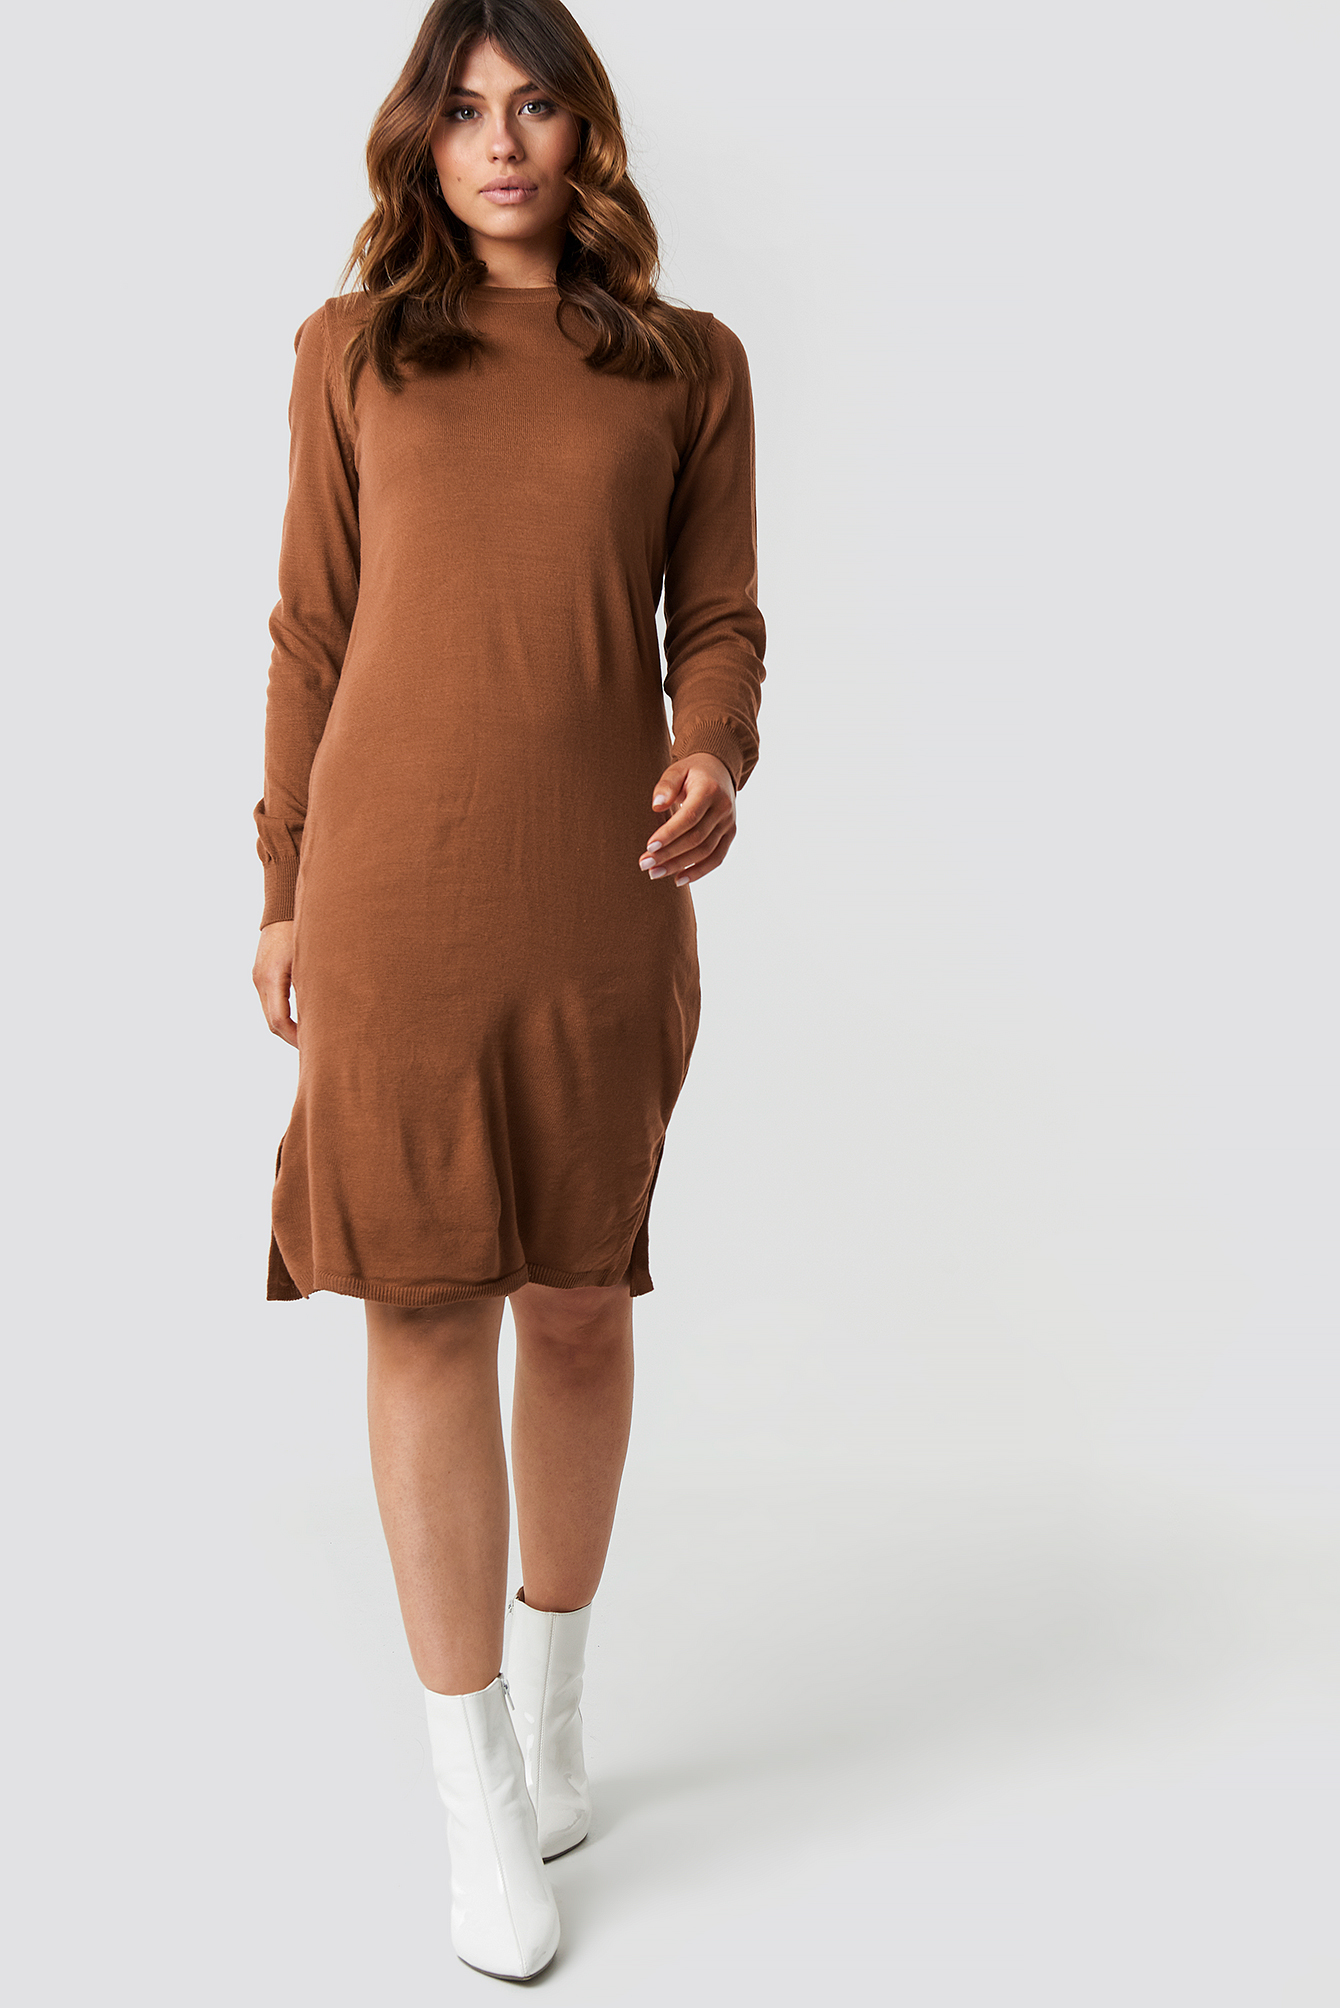 Tile Round Neck Midi Dress NA-KD.COM